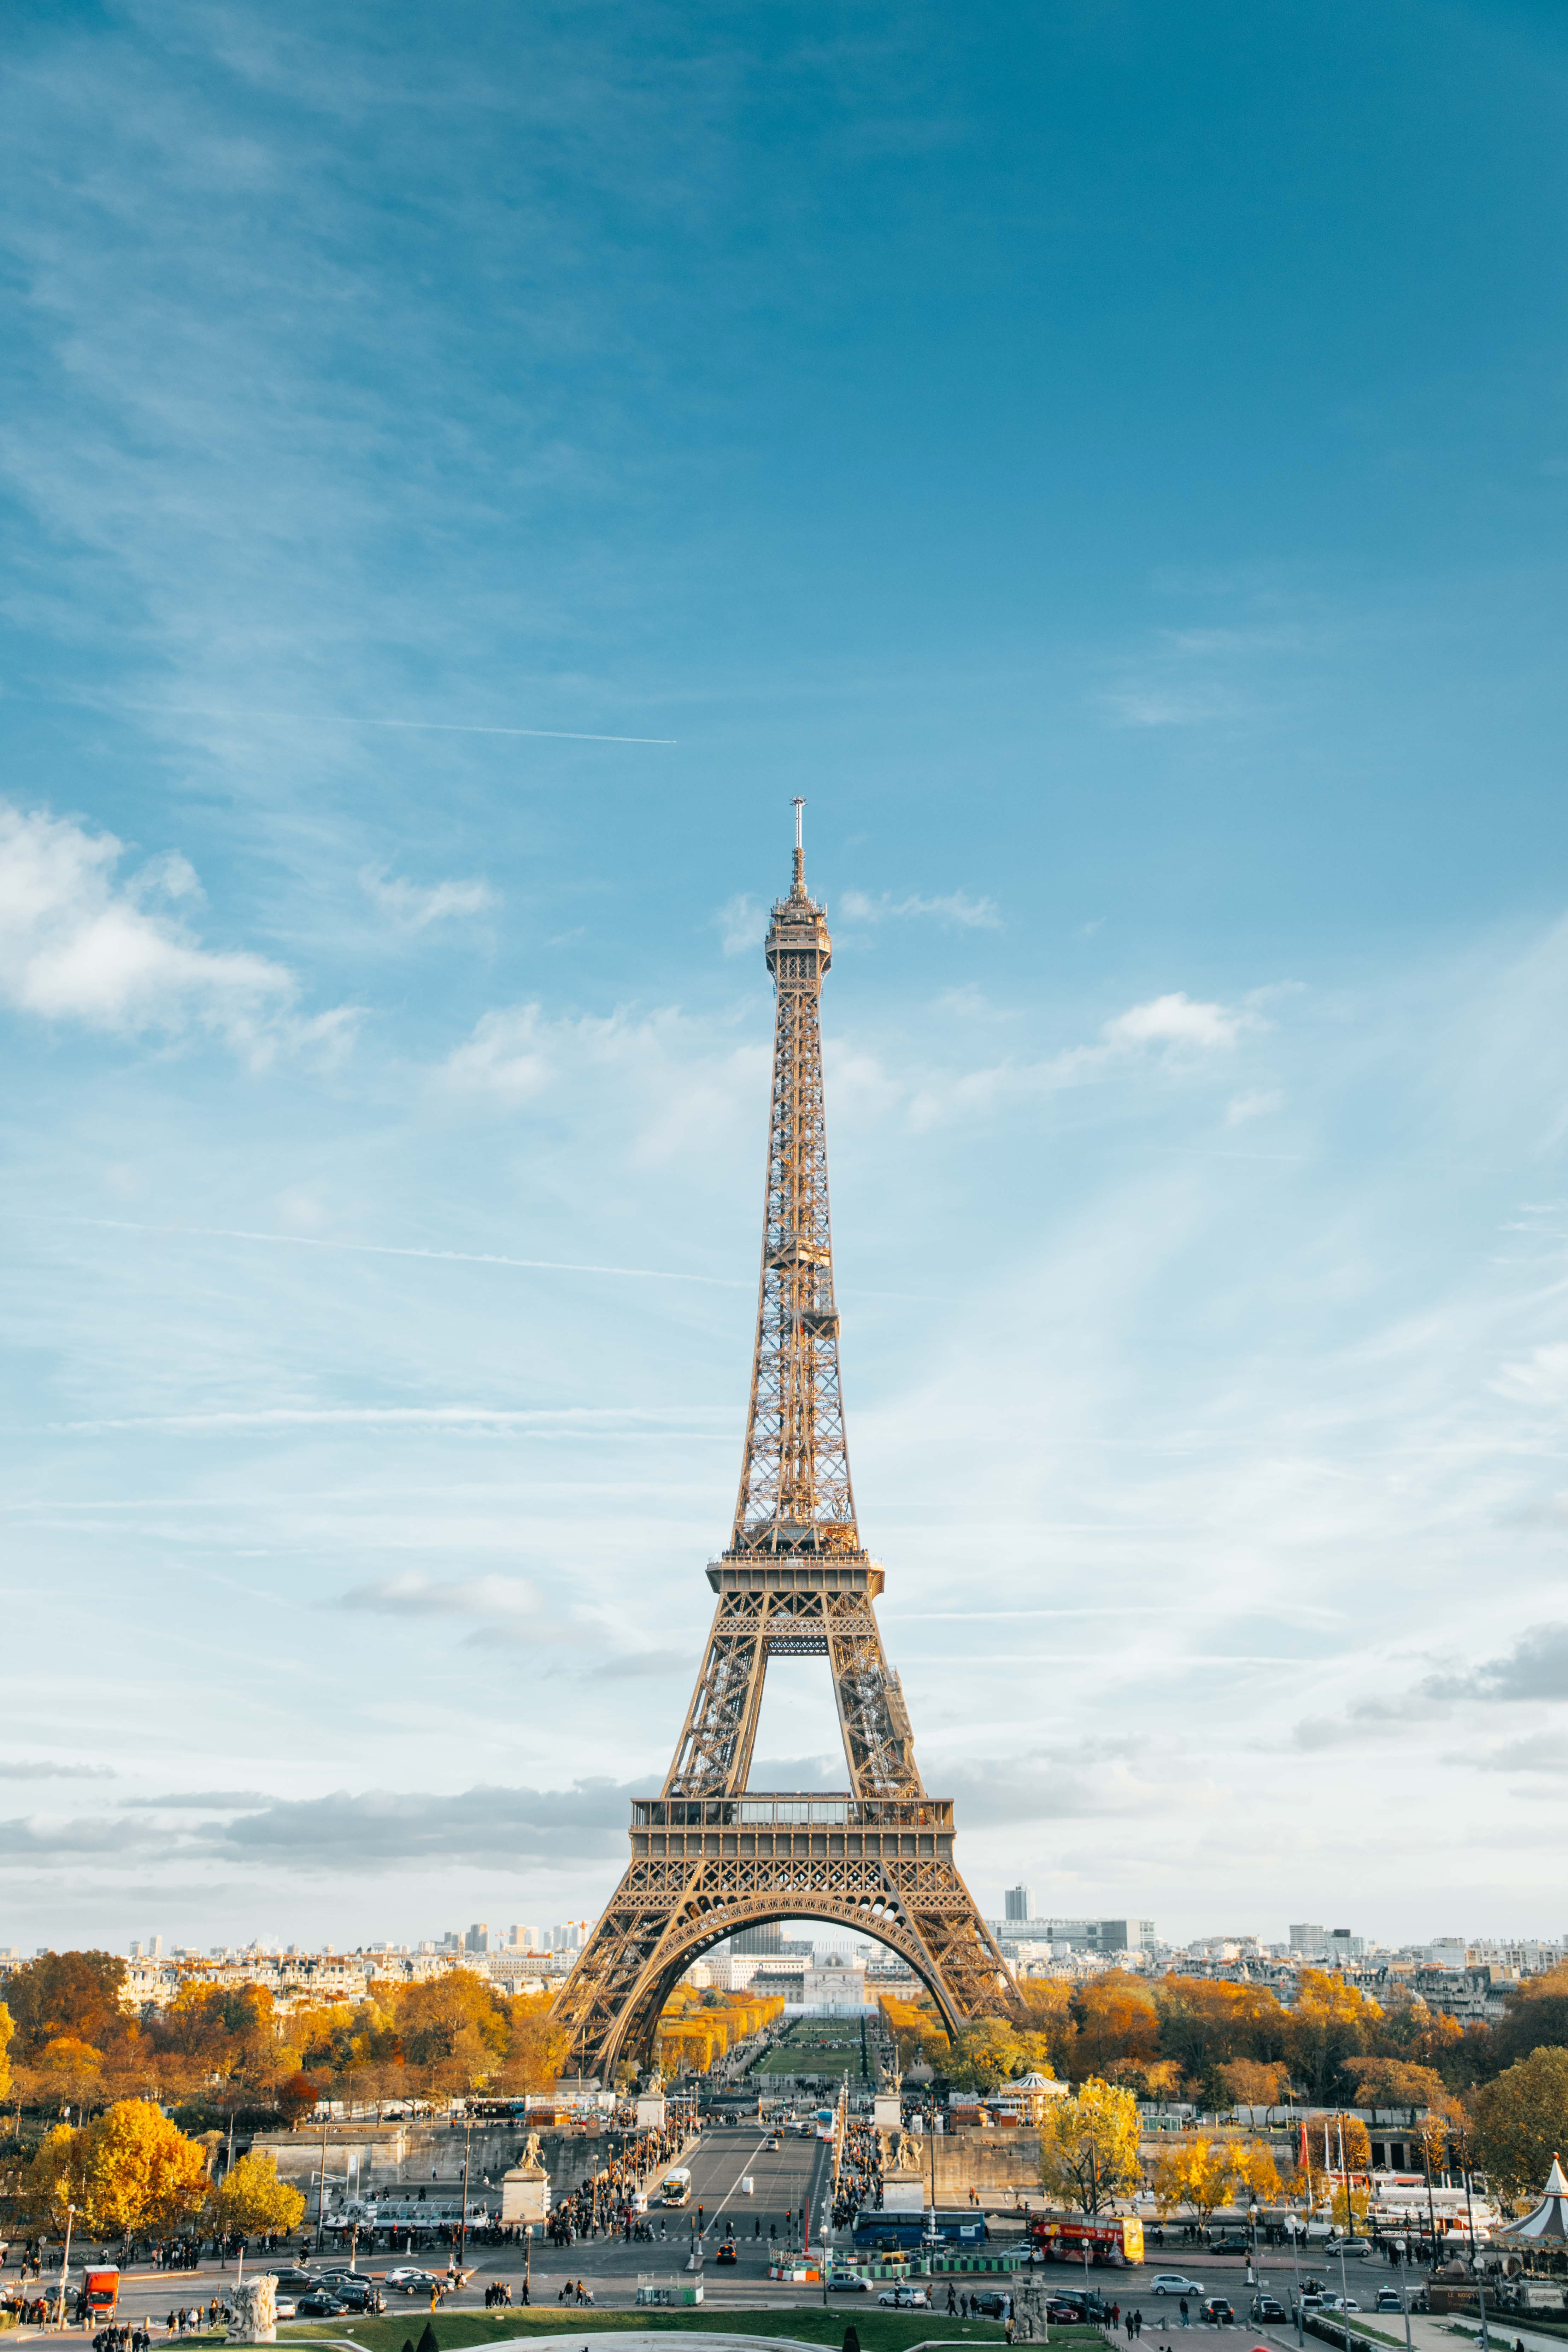 Eiffel Tower Stock Photos - Download 48,855 Images